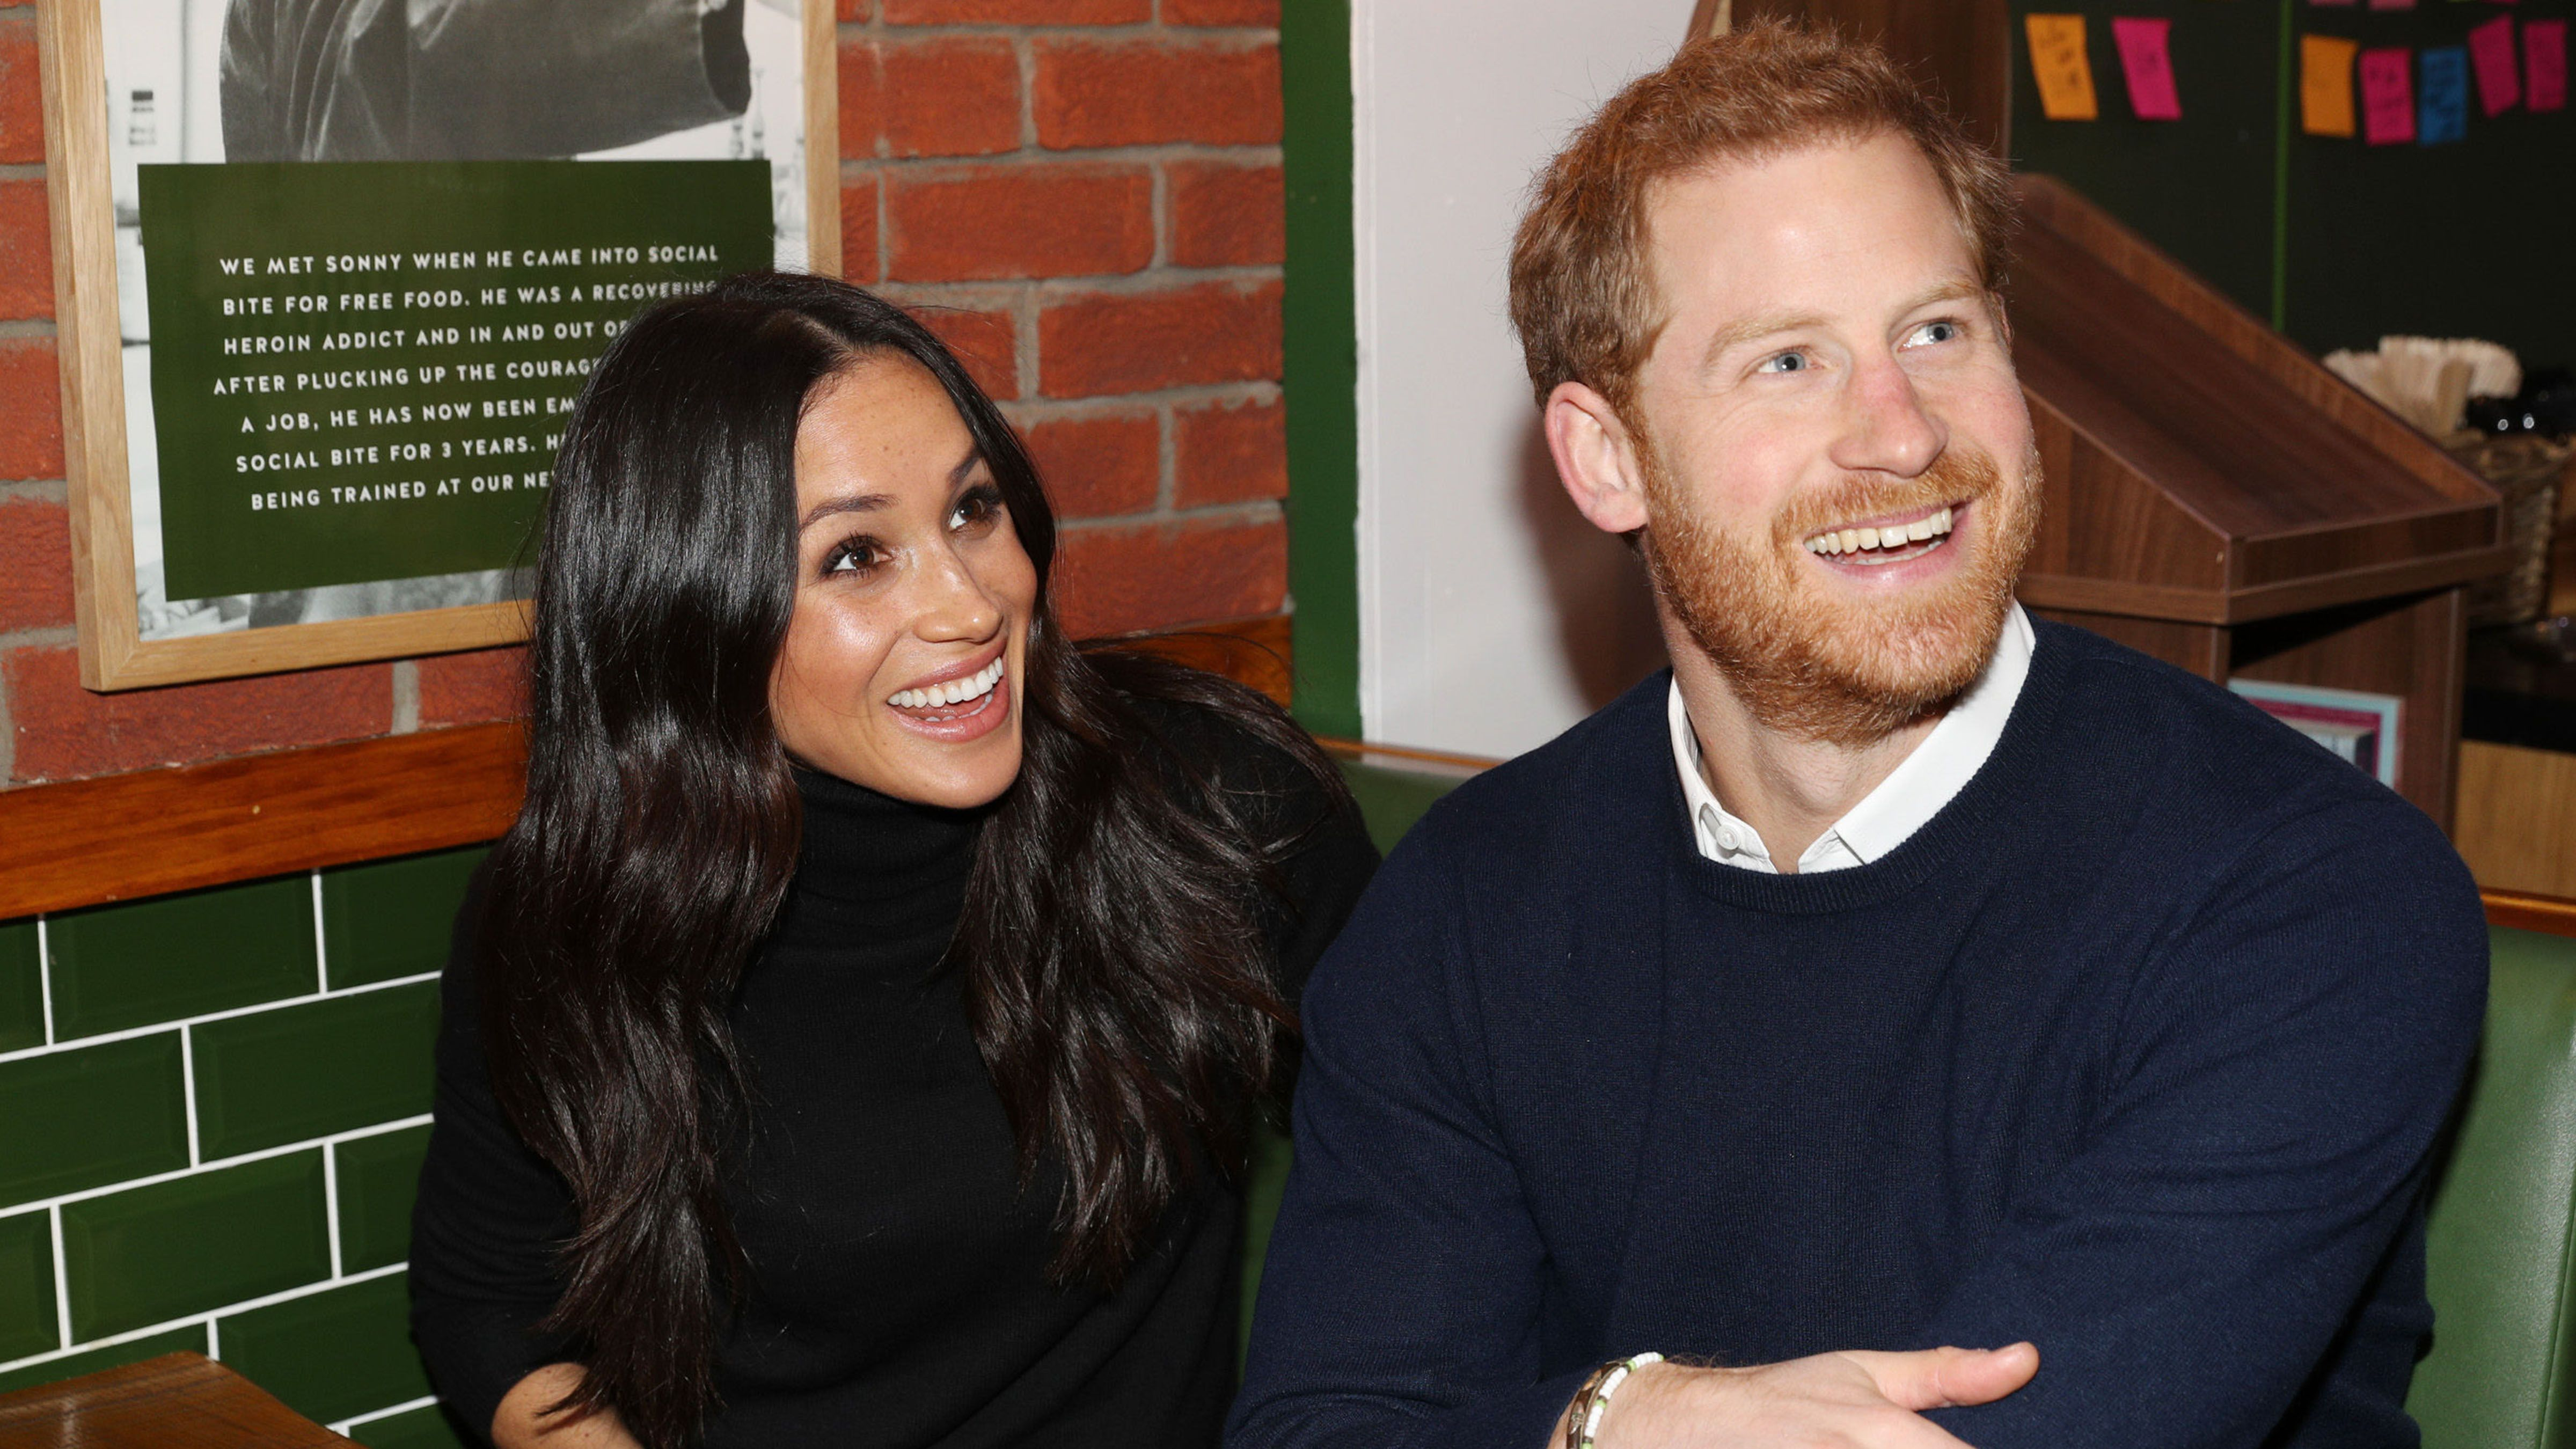 Meghan Markle Made a Good Place Joke About Meeting Prince Harry